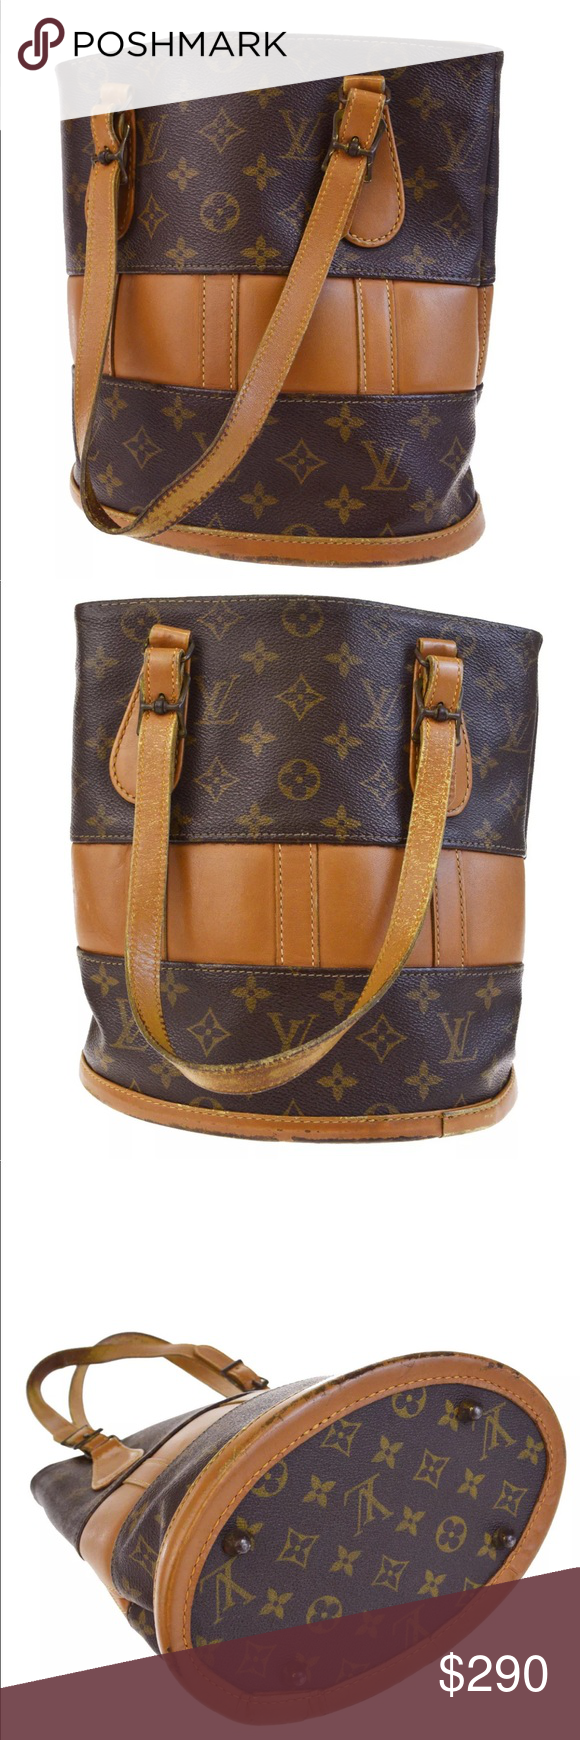 c7492b472a Authentic Louis Vuitton USA bucket PM Monogram This classic bucket style shoulder  bag is crafted of